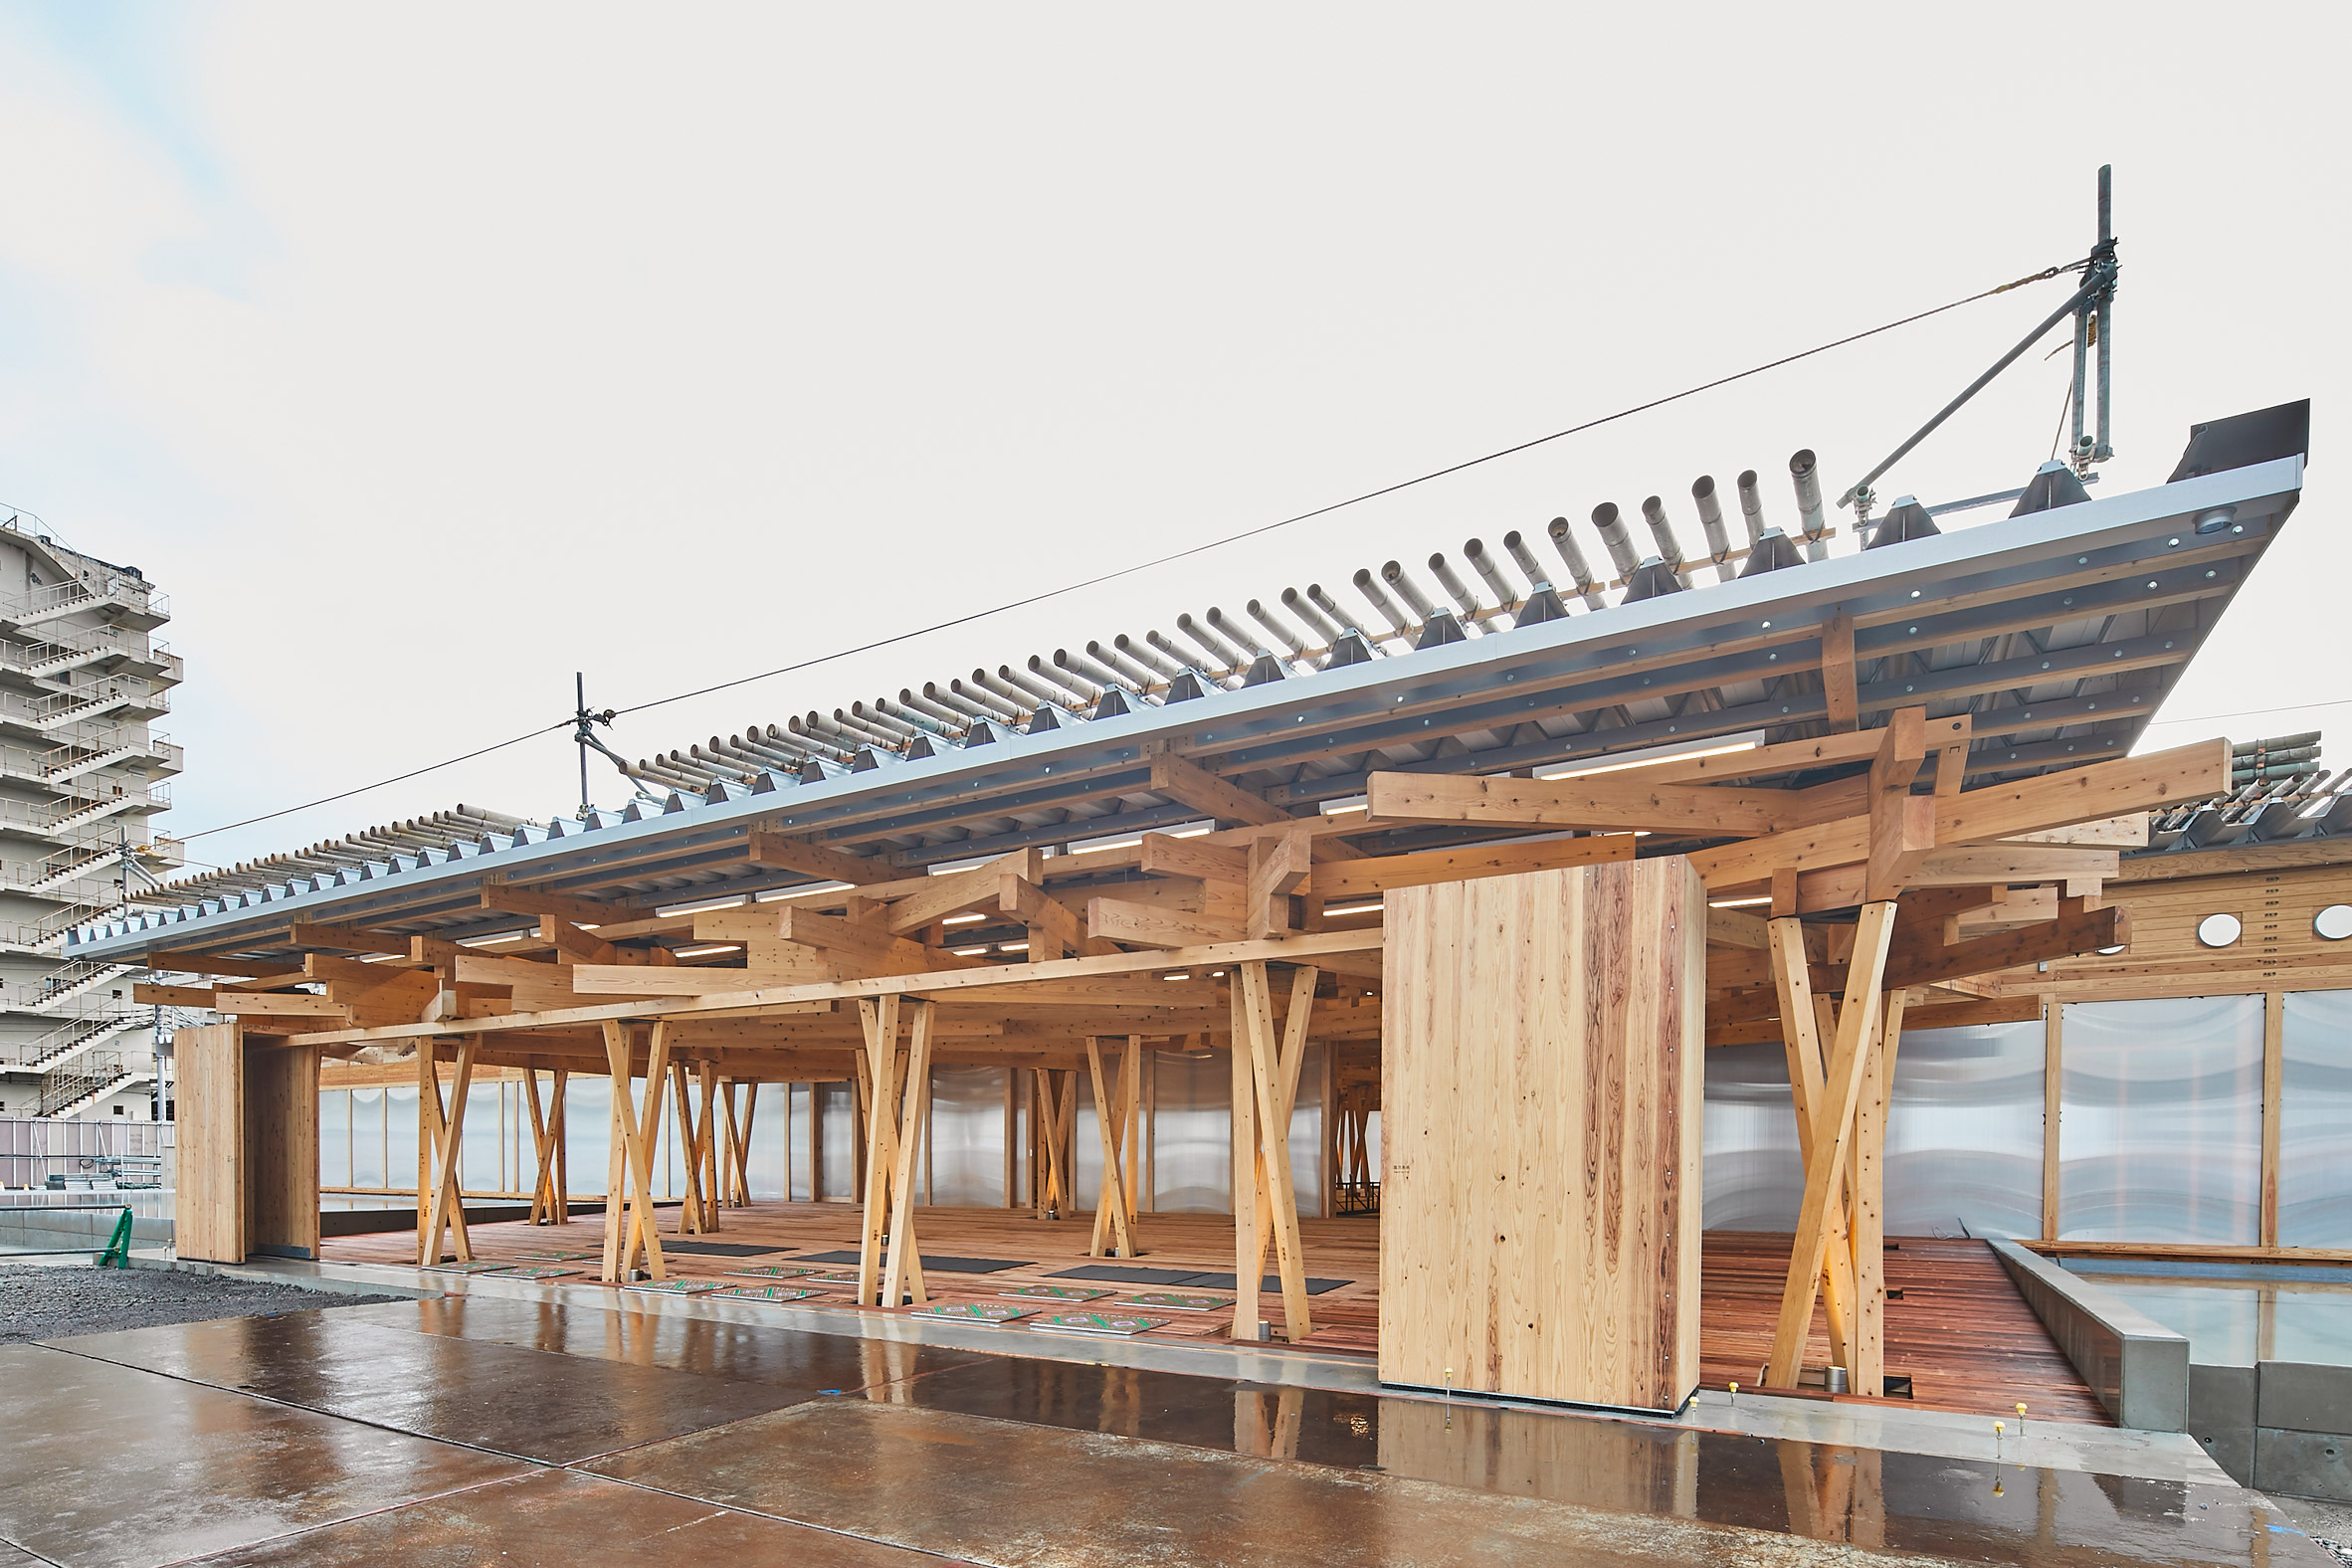 Beams were stacked at the olympic village plaza